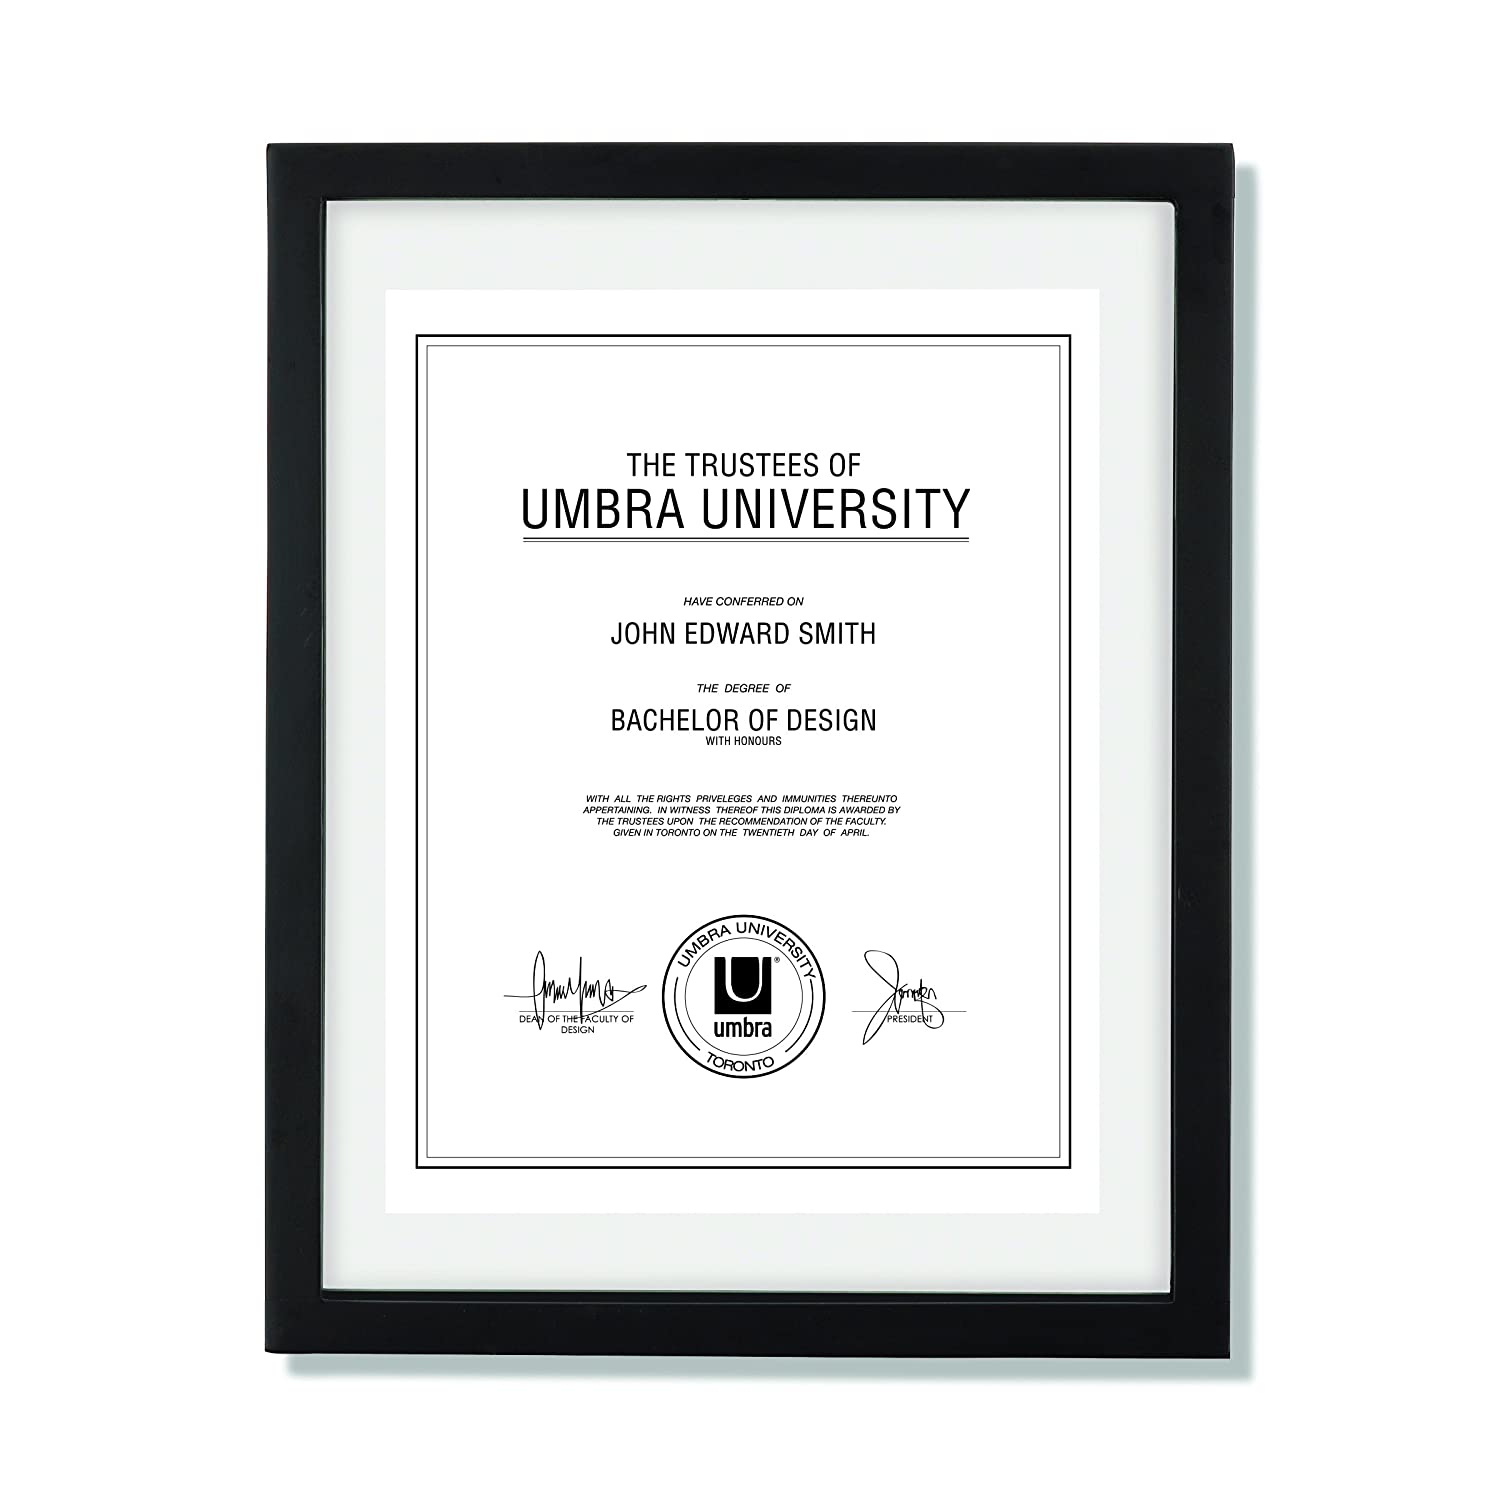 Umbra Document Frame 11x14 inch – Modern Picture Frame Designed to Display a Floating 8.5x11 Document, Diploma, Certificate, Photo or Artwork (Black) 316280-040